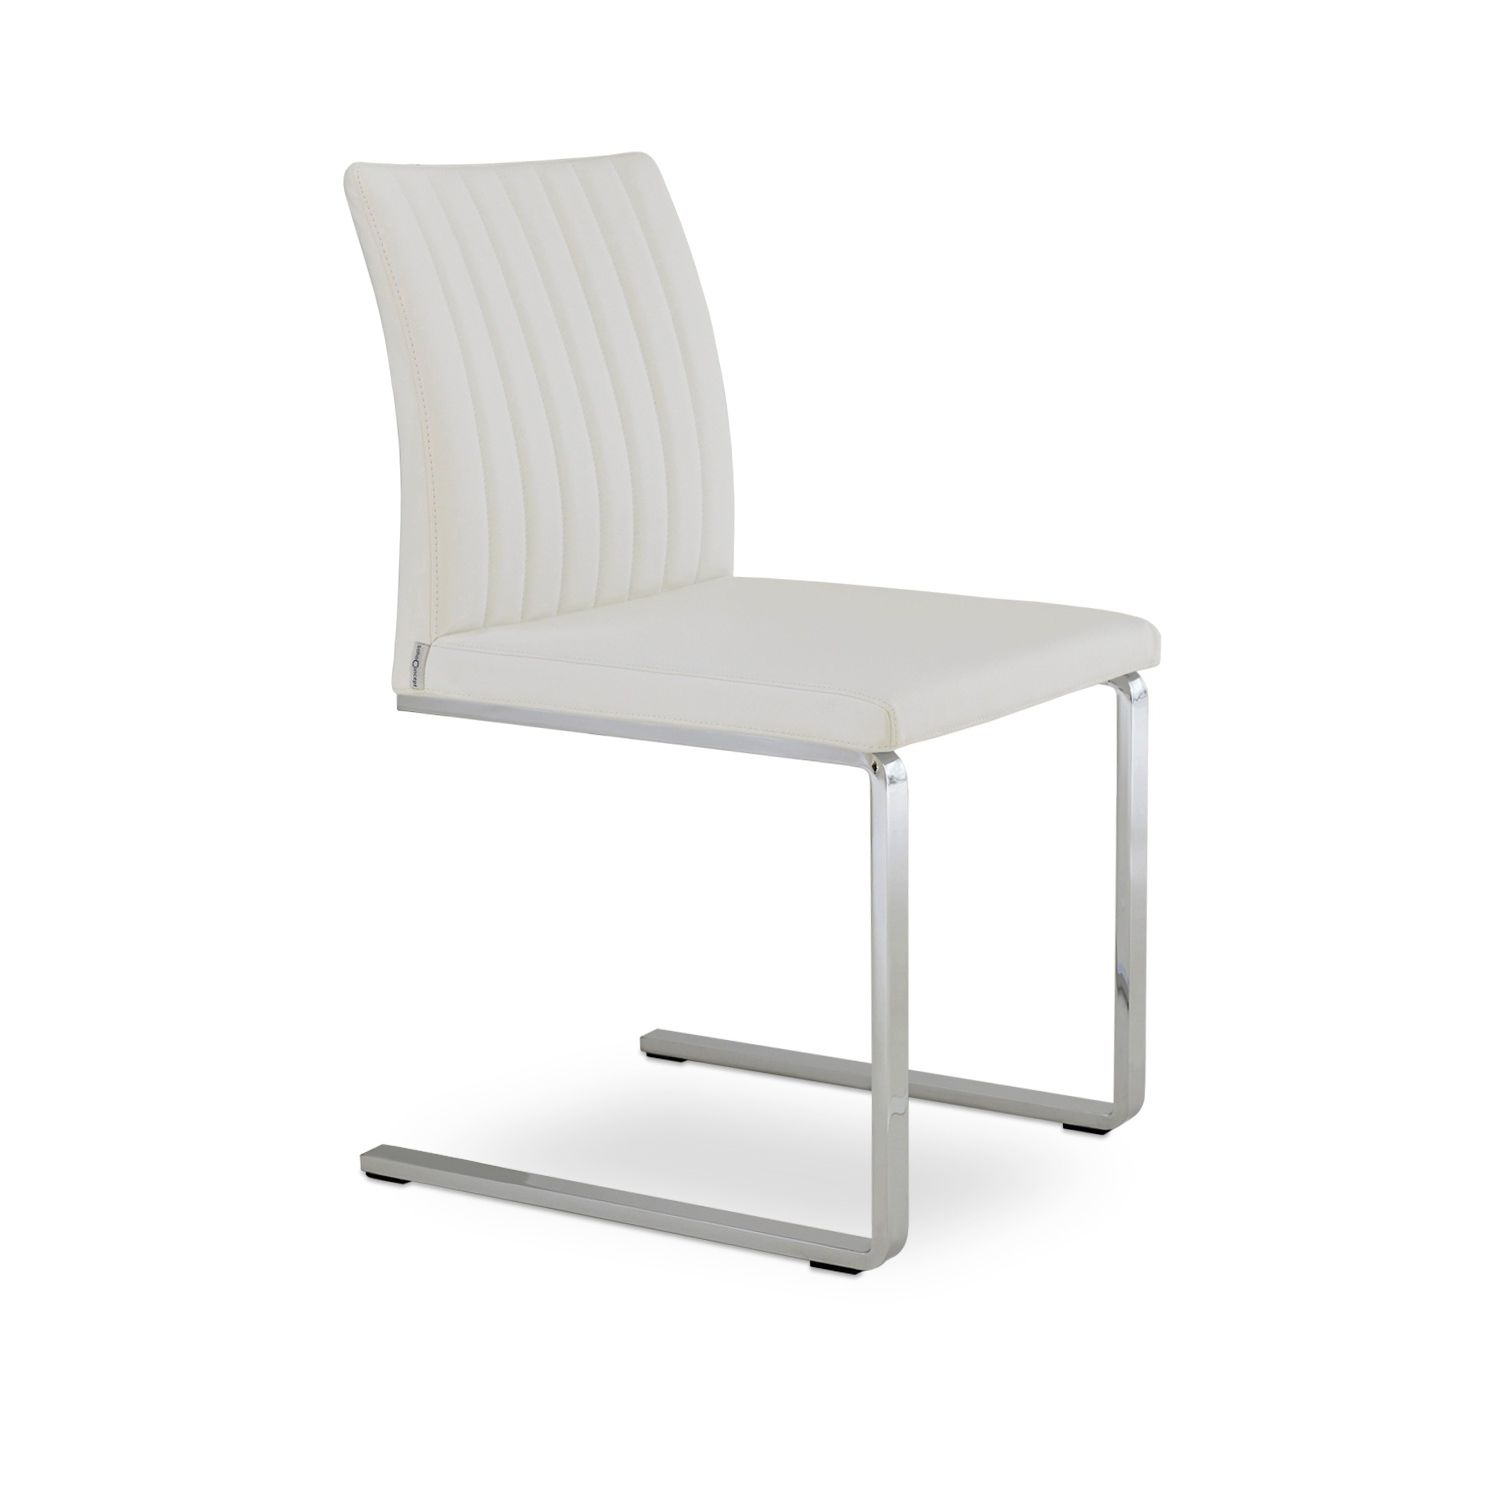 Luge Chaise Cantilever Contemporaine Tapissée Zeyno By WEDH29I